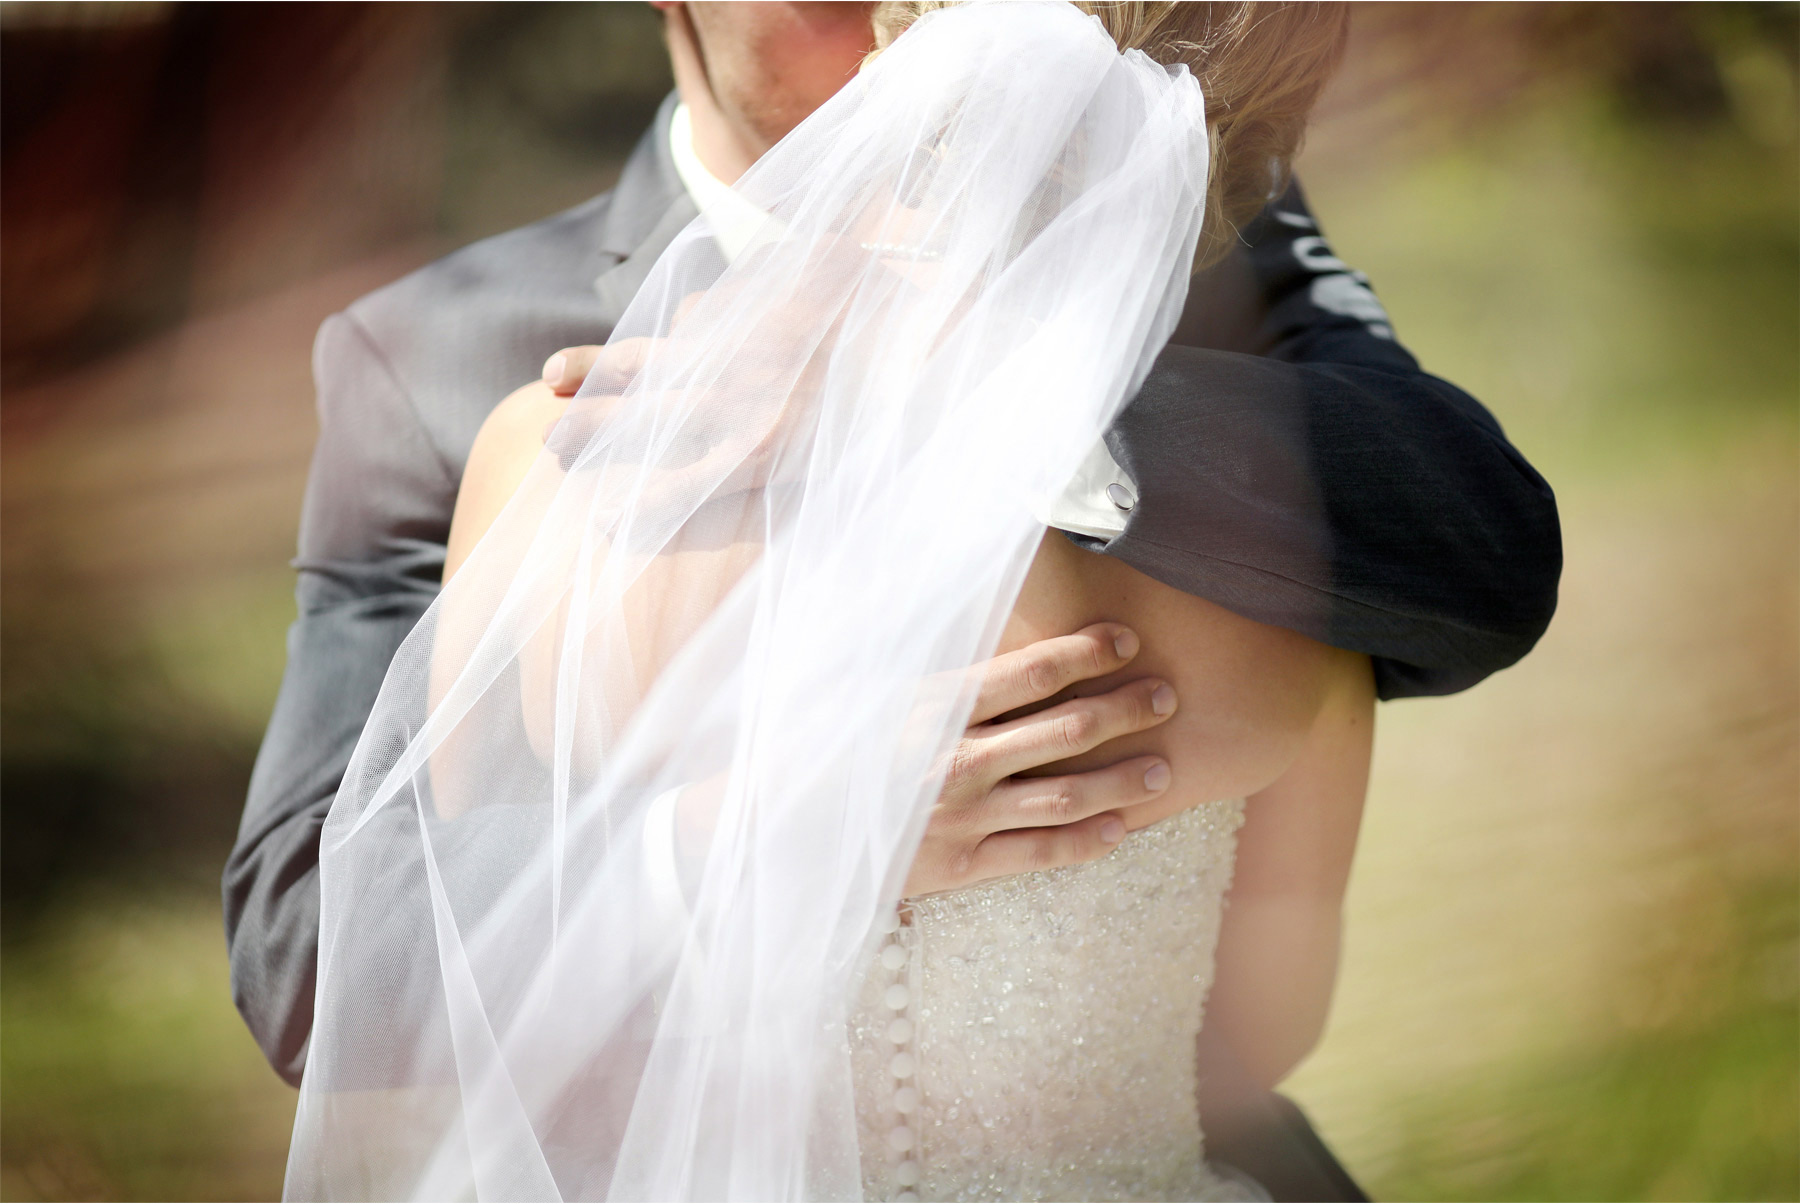 03-Minneapolis-Wedding-Photography-by-Vick-Photography-First-Look-Kasie-and-Joshua.jpg